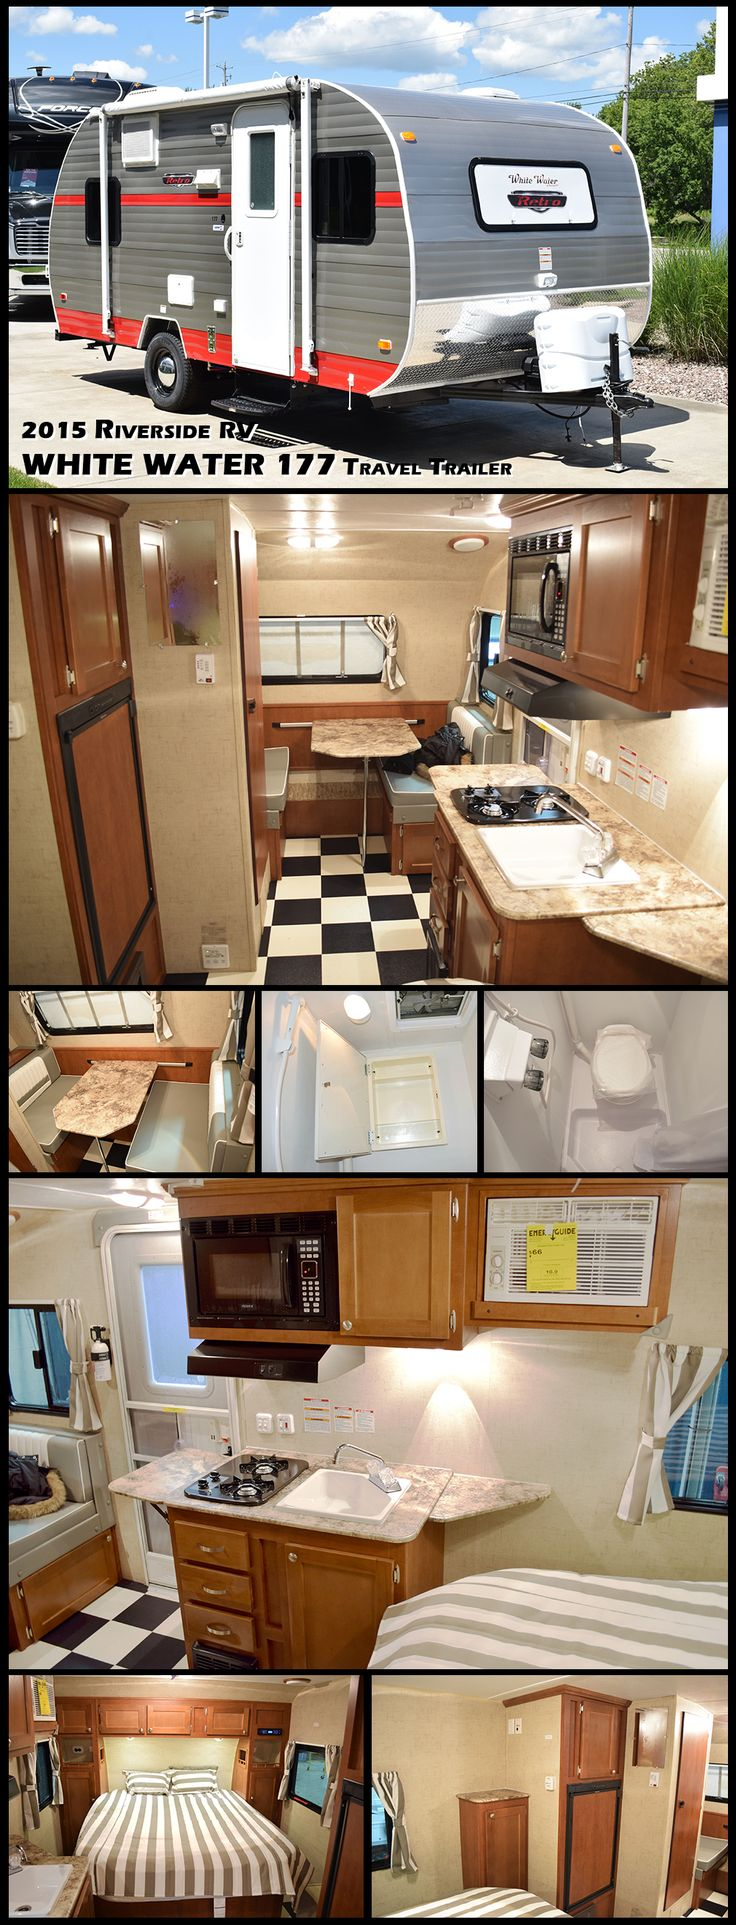 """This 2015 RIVERSIDE RV WHITE WATER RETRO 177 Ultra-Lite travel trailer has everything you would want while camping, including AC, furnace, bathroom/shower, galley with large sink and microwave oven, 2 stove top burners, refrigerator, dinette booth/bed, and a 60"""" by 74"""" walk-around bed. True Amish craftsmanship goes into each unit, and although they look like a throw-back to the 1950's, these trailers have lightweight aluminum framework for strength and durability."""